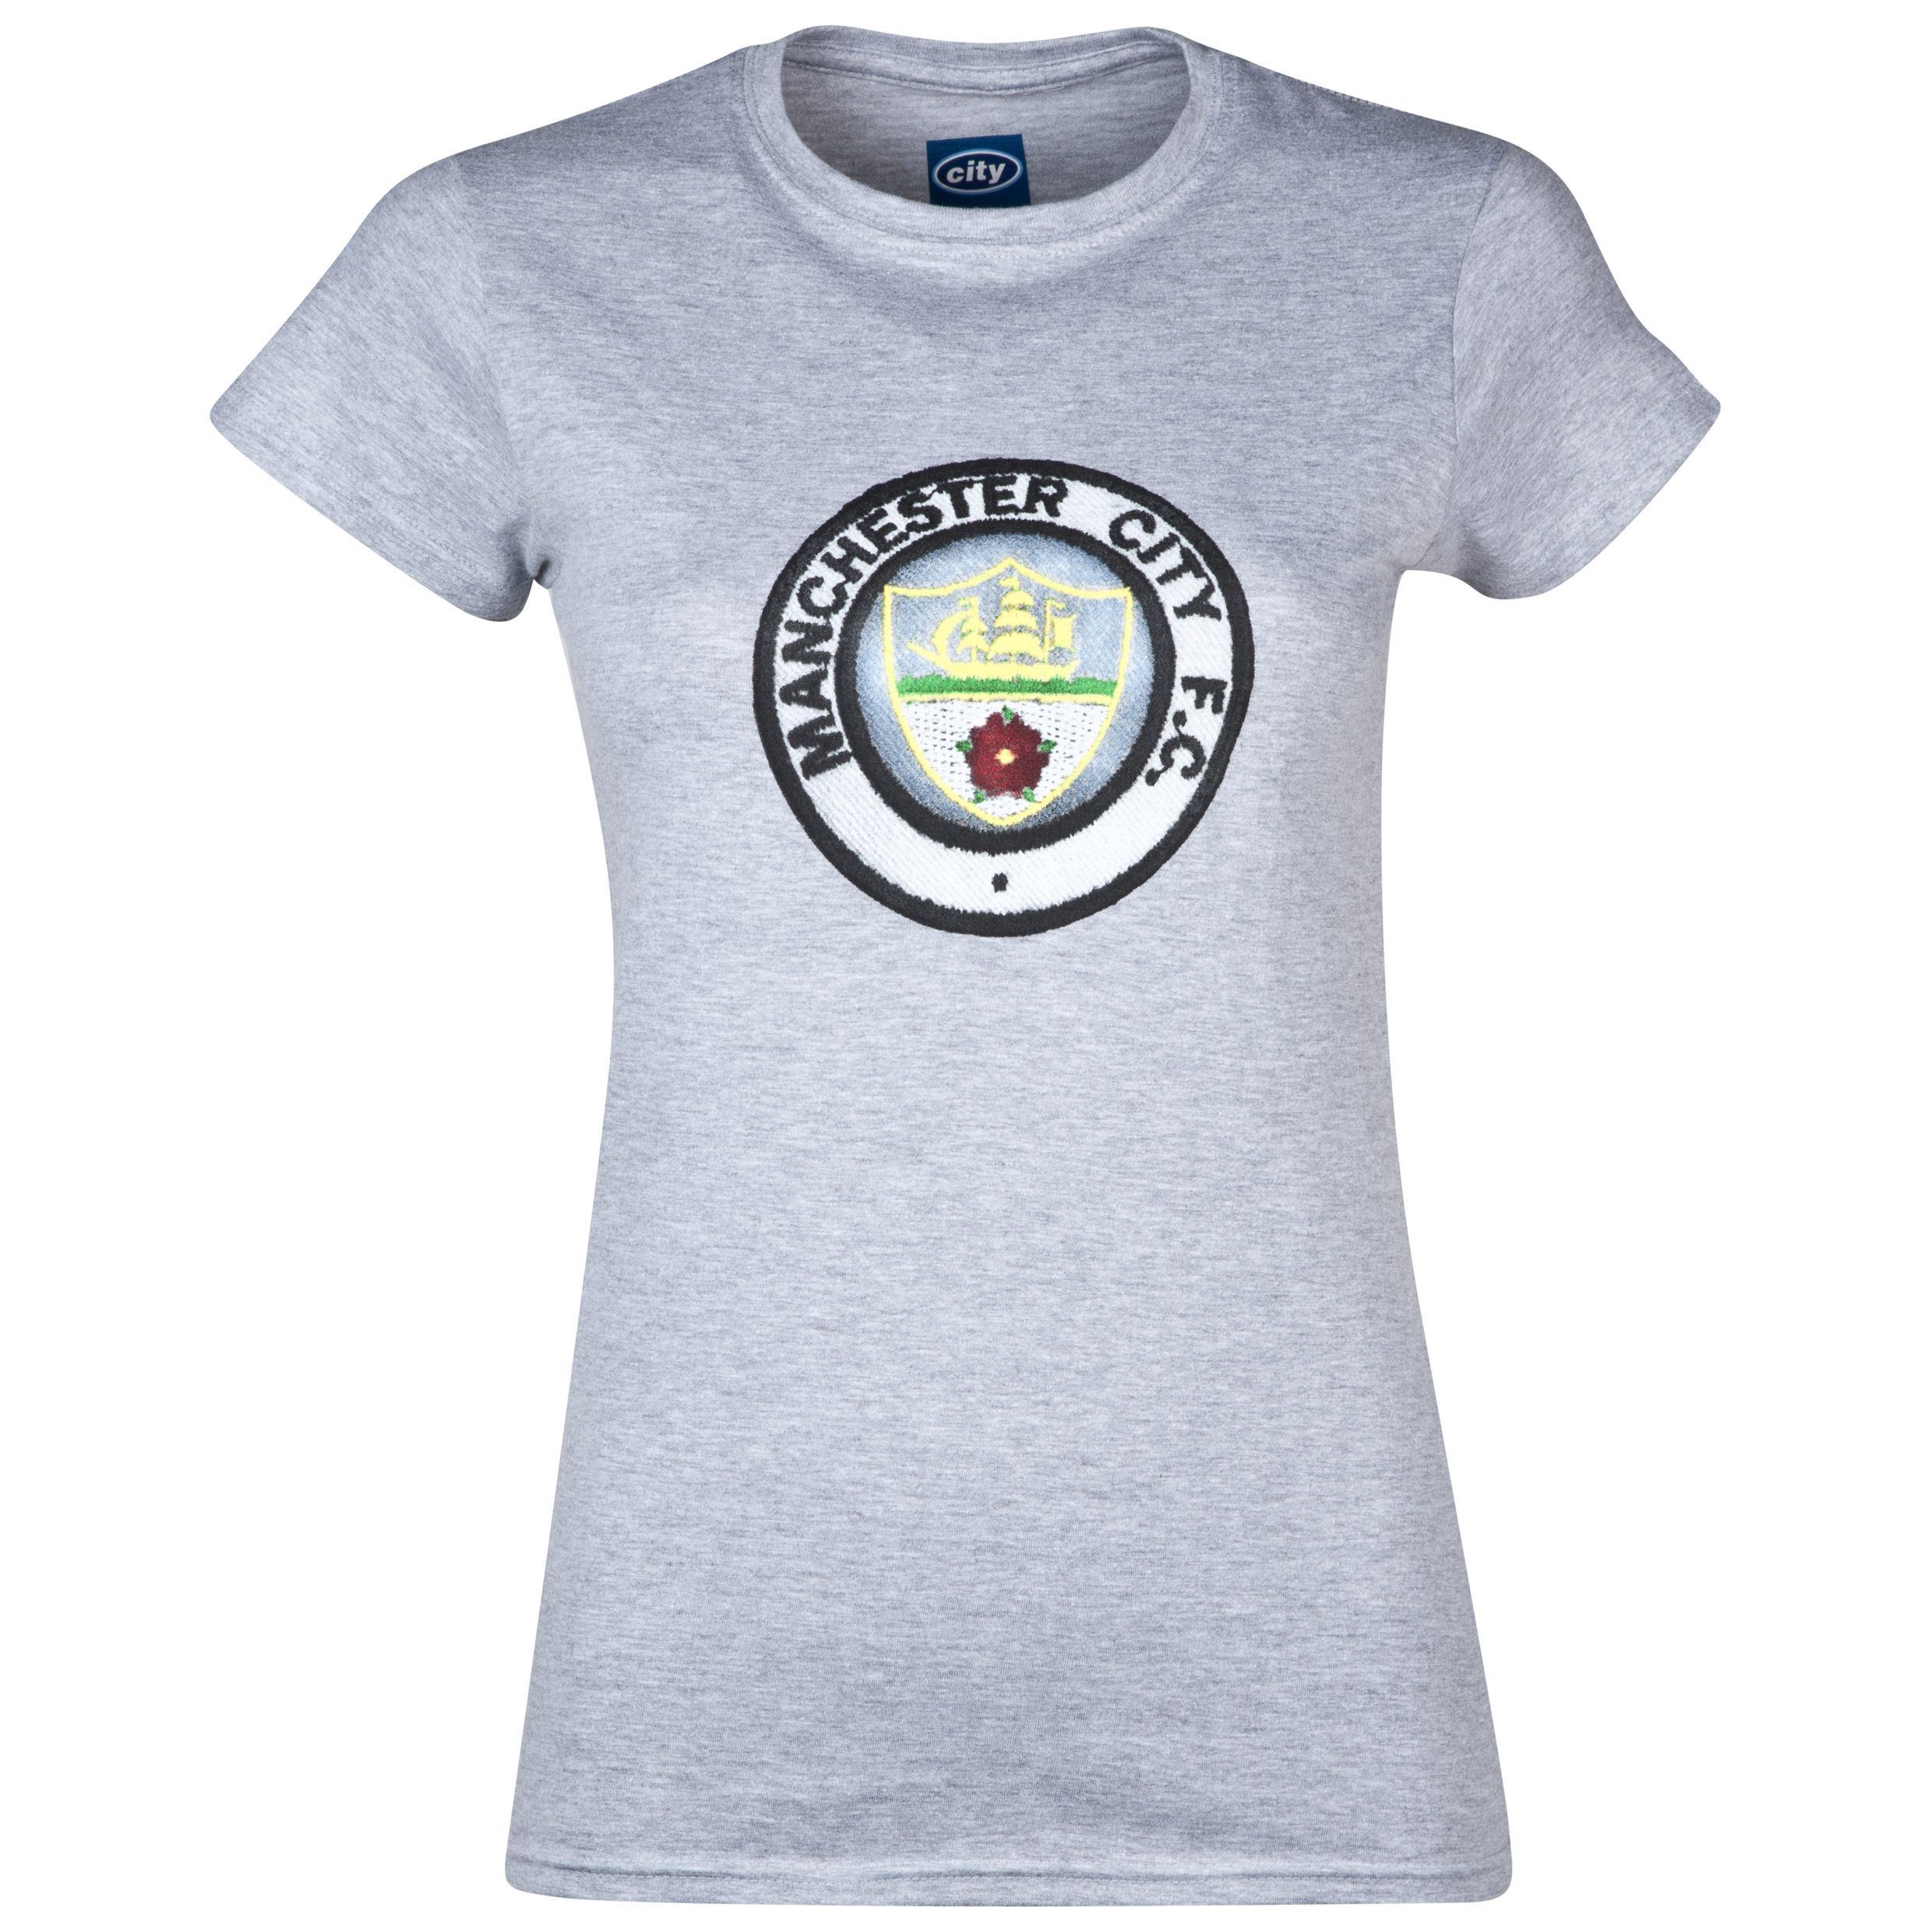 Manchester City 2for?20 Retro Crest T-Shirt - Sports Grey - Womens